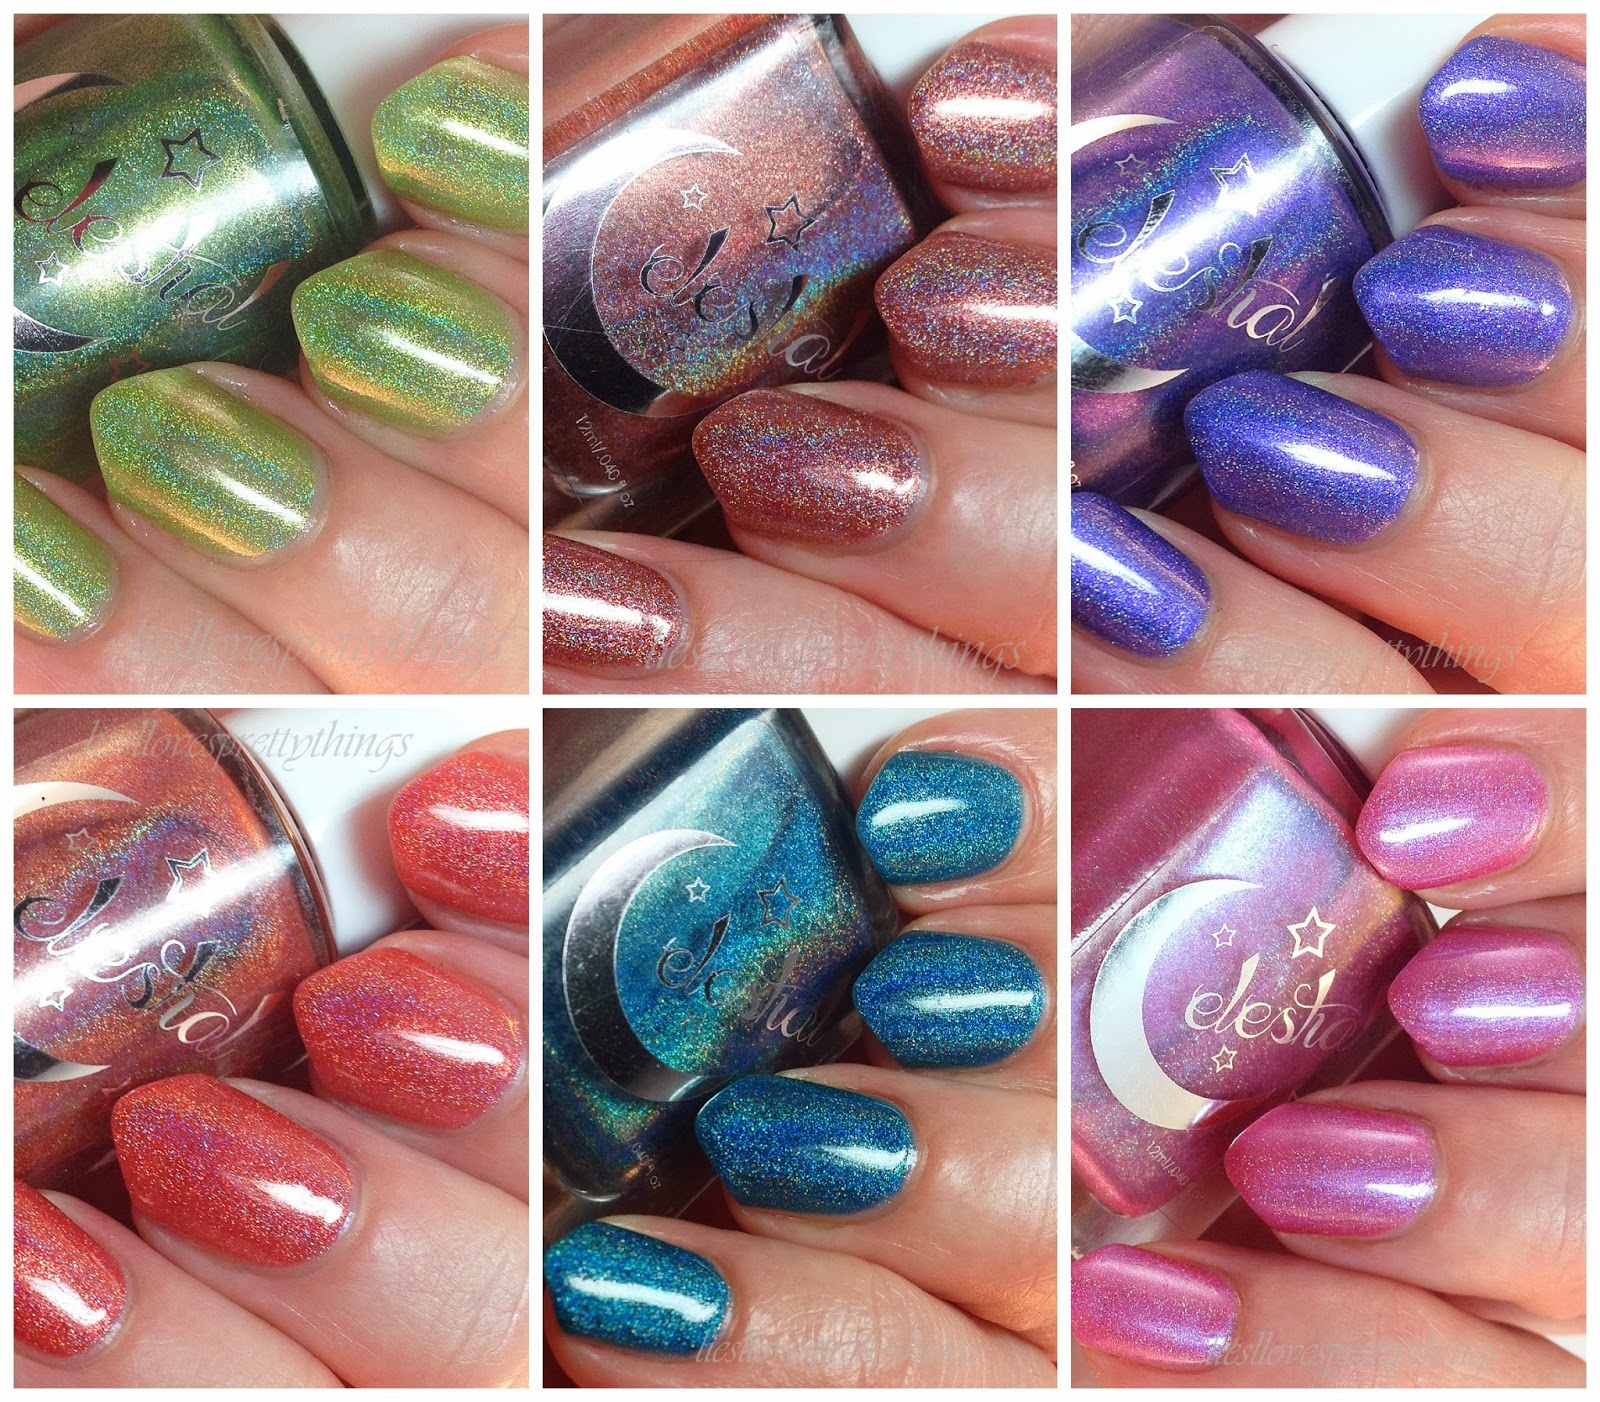 Celestial Cosmetics holo polish swatch and review